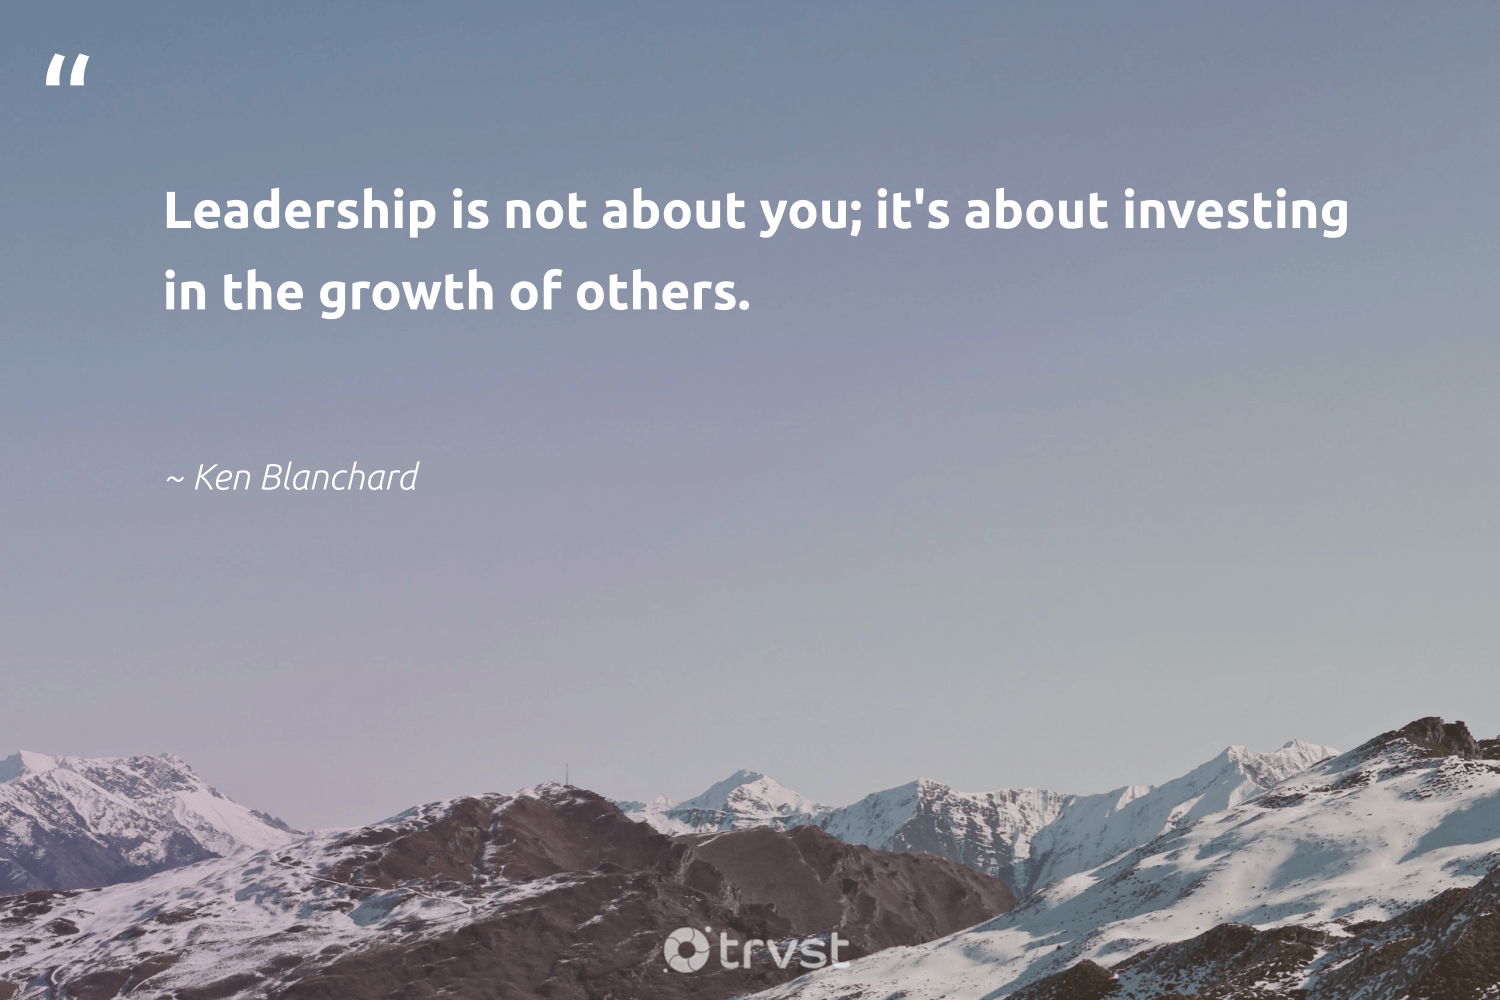 """Leadership is not about you; it's about investing in the growth of others.""  - Ken Blanchard #trvst #quotes #leadership #leadershipqualities #futureofwork #begreat #thinkgreen #leadershipskills #nevergiveup #softskills #bethechange #leadershipdevelopment"